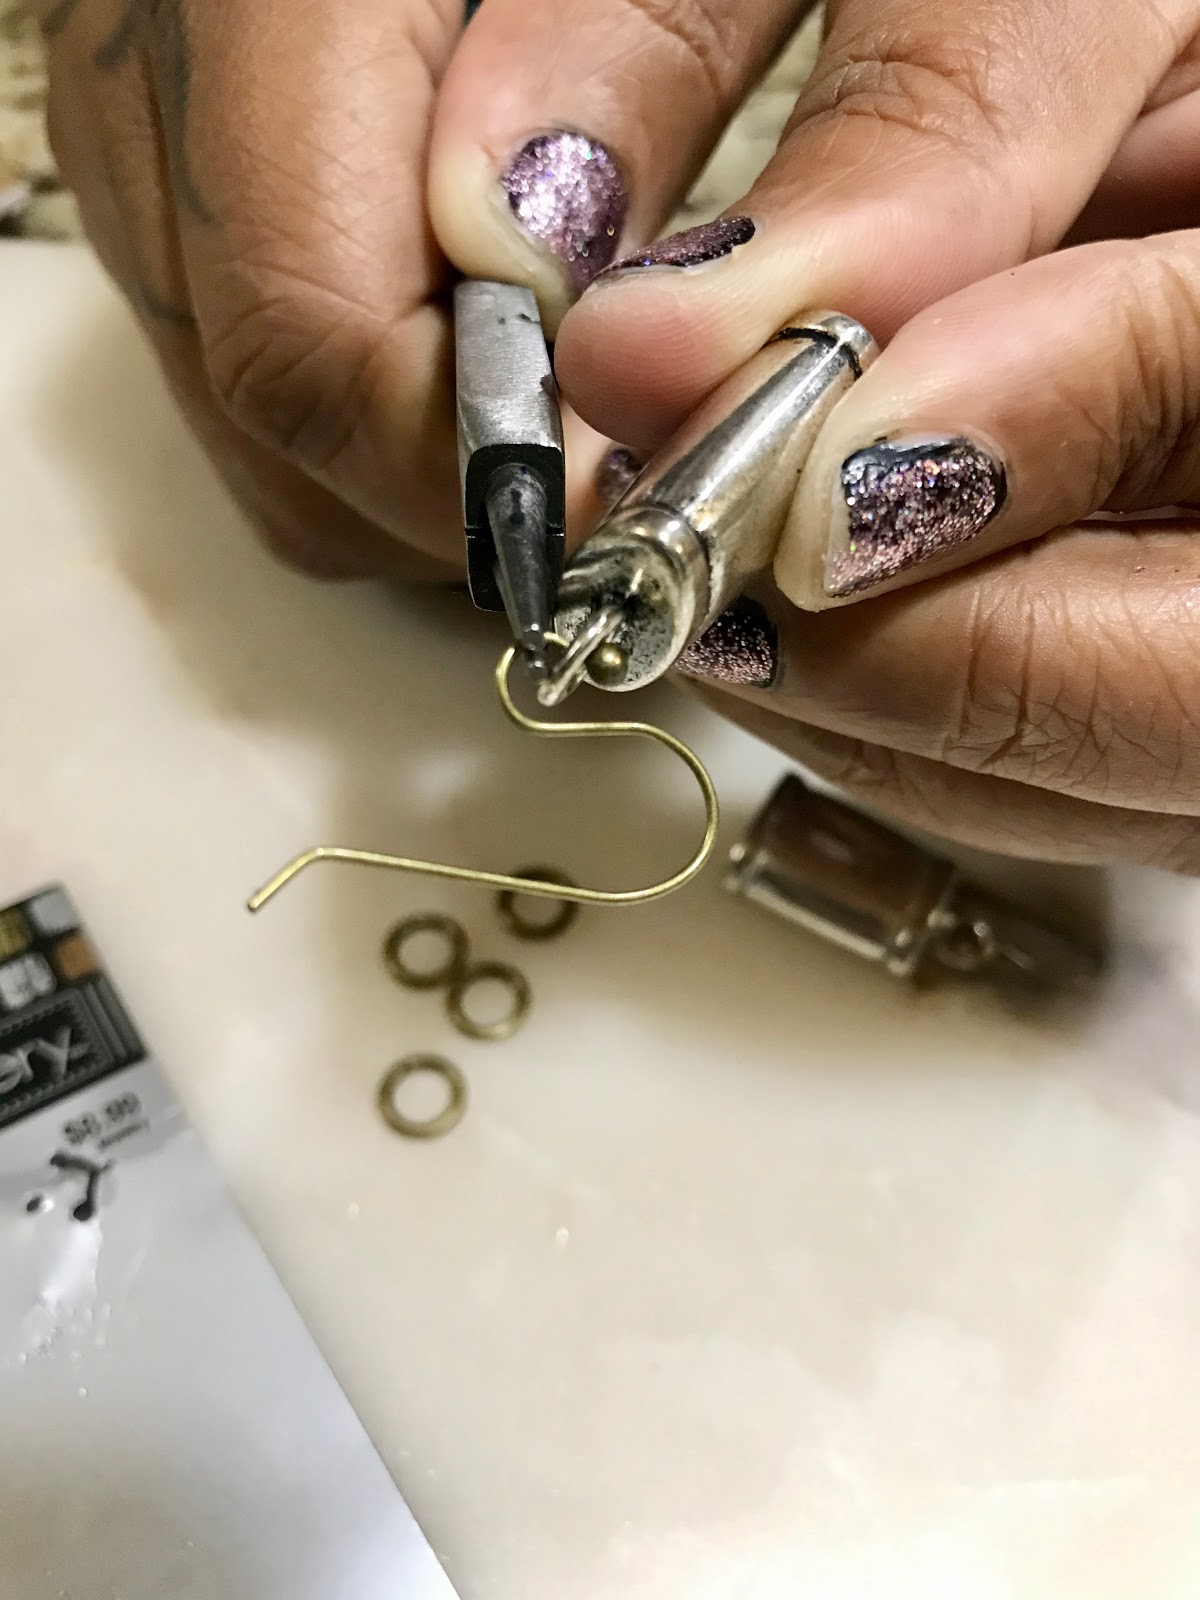 Image: Tangie Bell uses end caps and ear hooks to make earrings for a quick date night